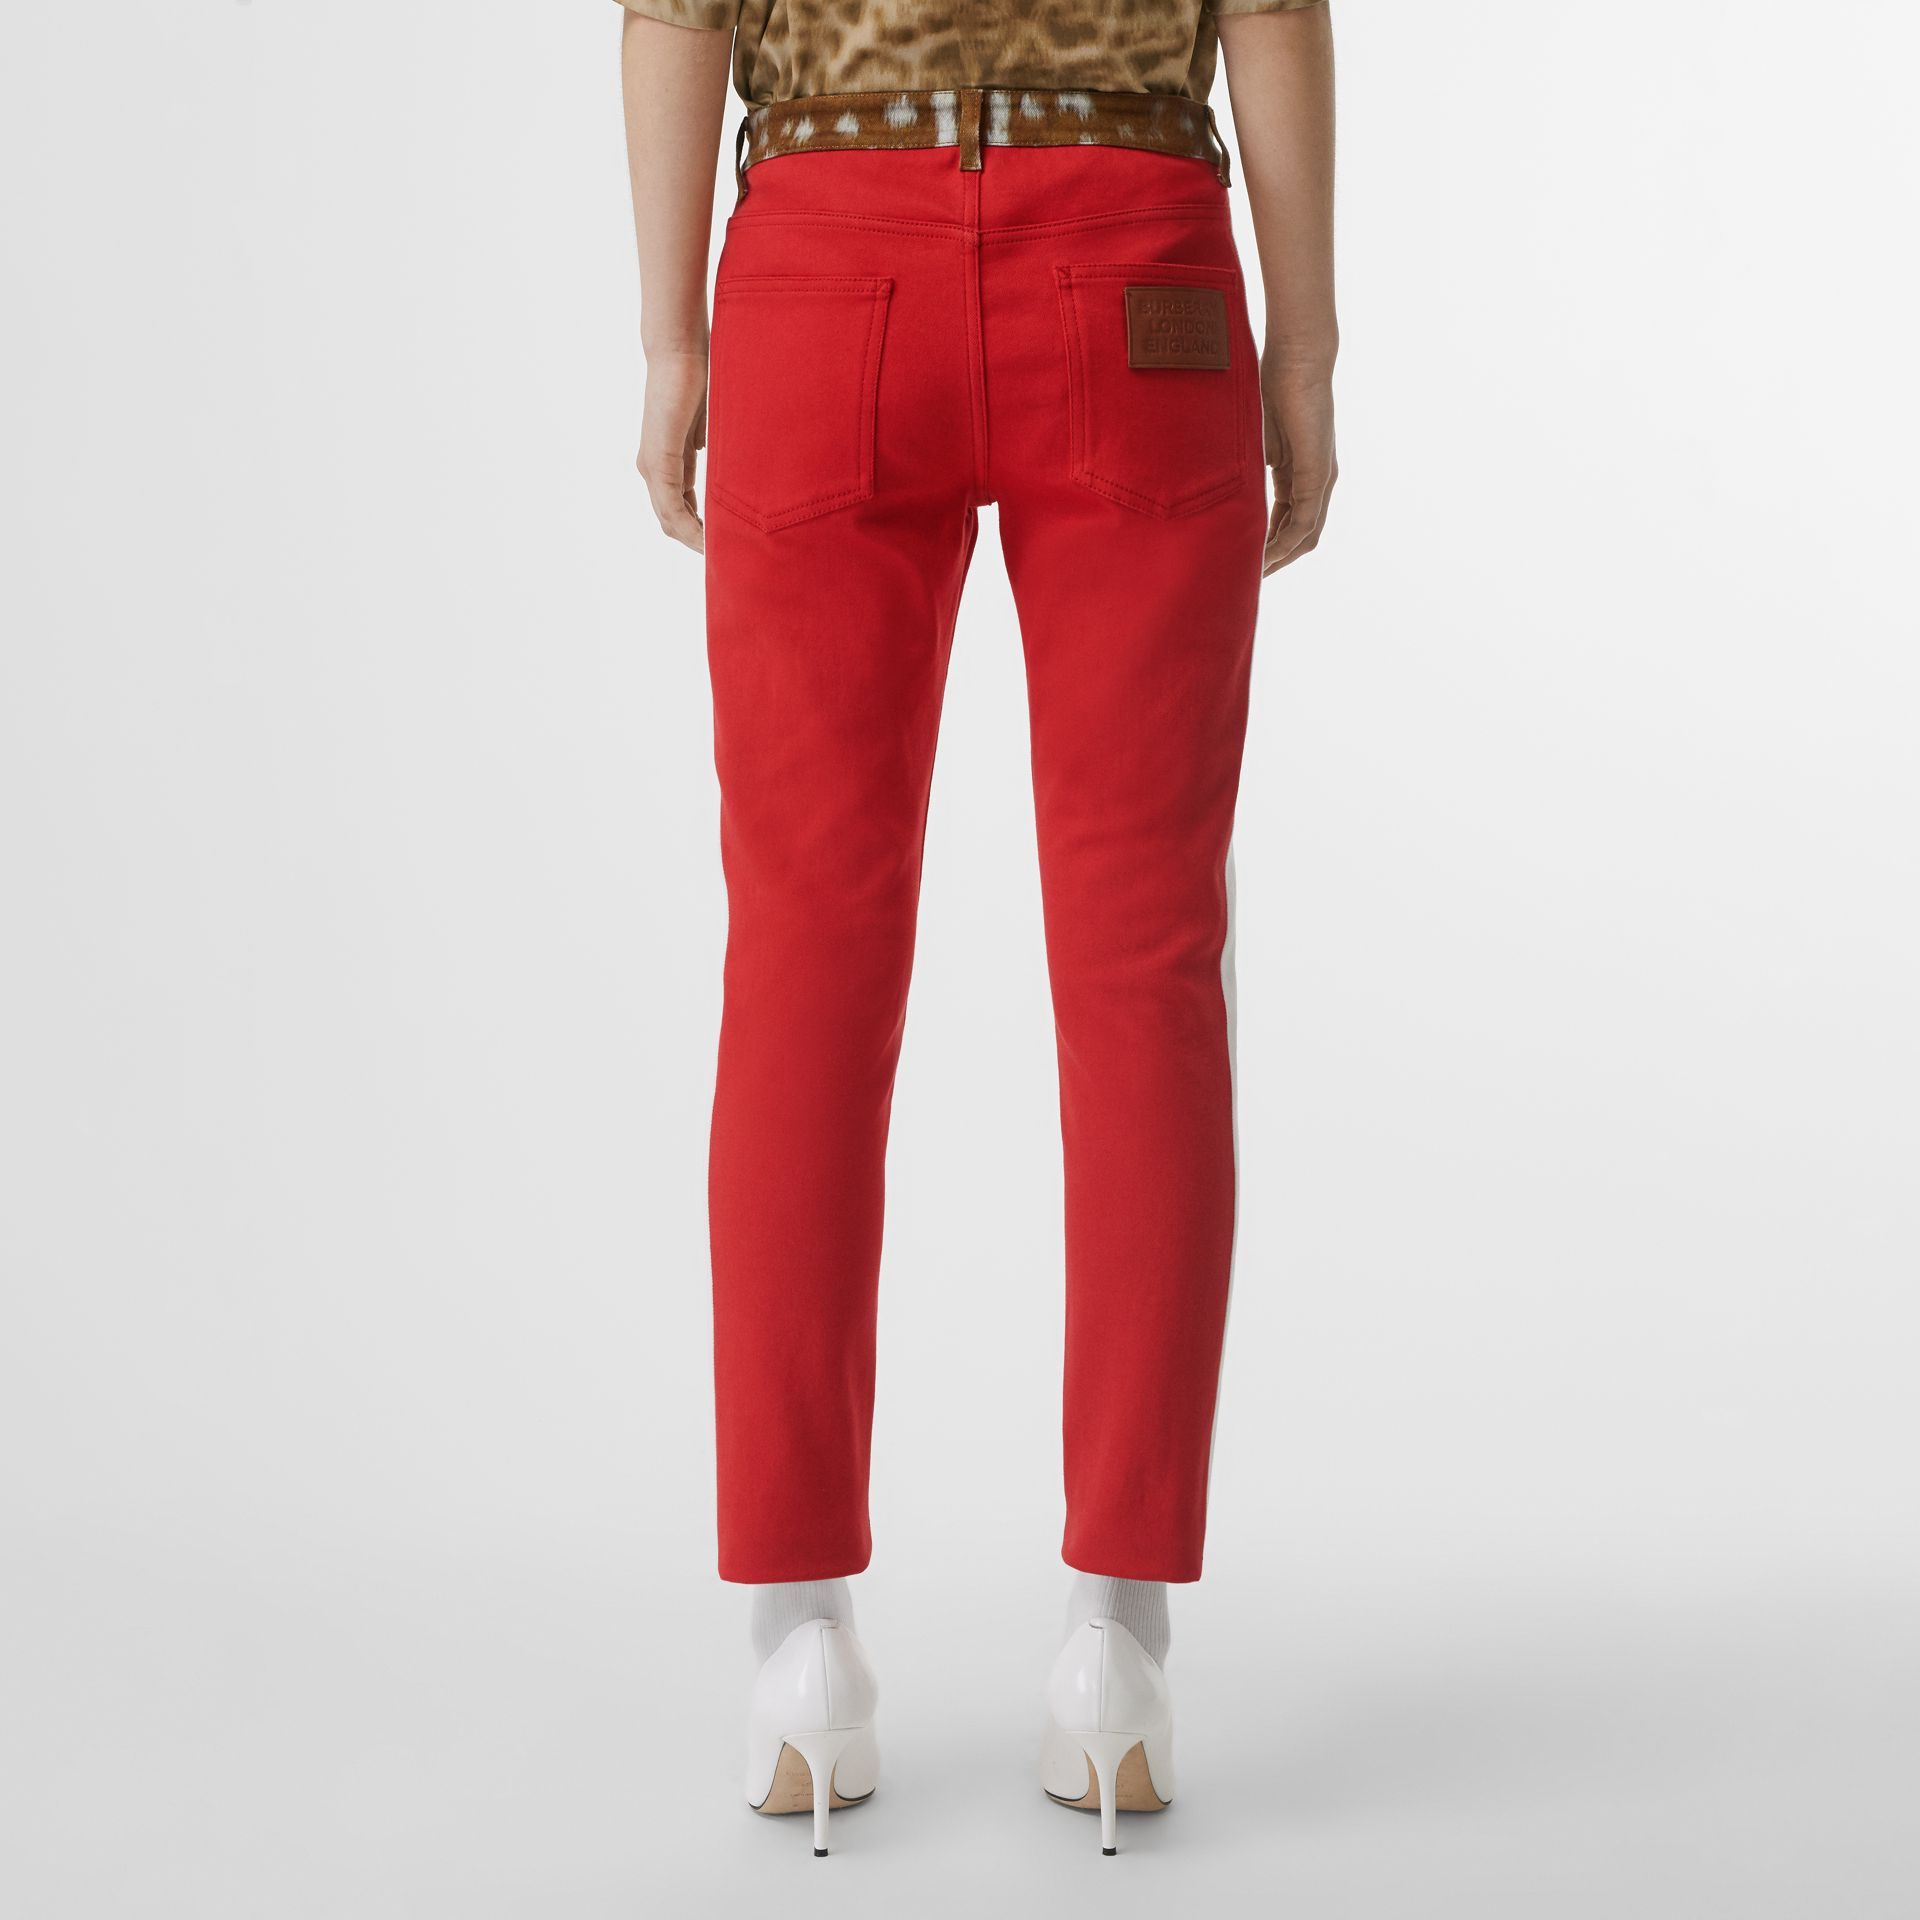 Straight Fit Deer Print Trim Japanese Denim Jeans in Bright Red - Women | Burberry United Kingdom - gallery image 2